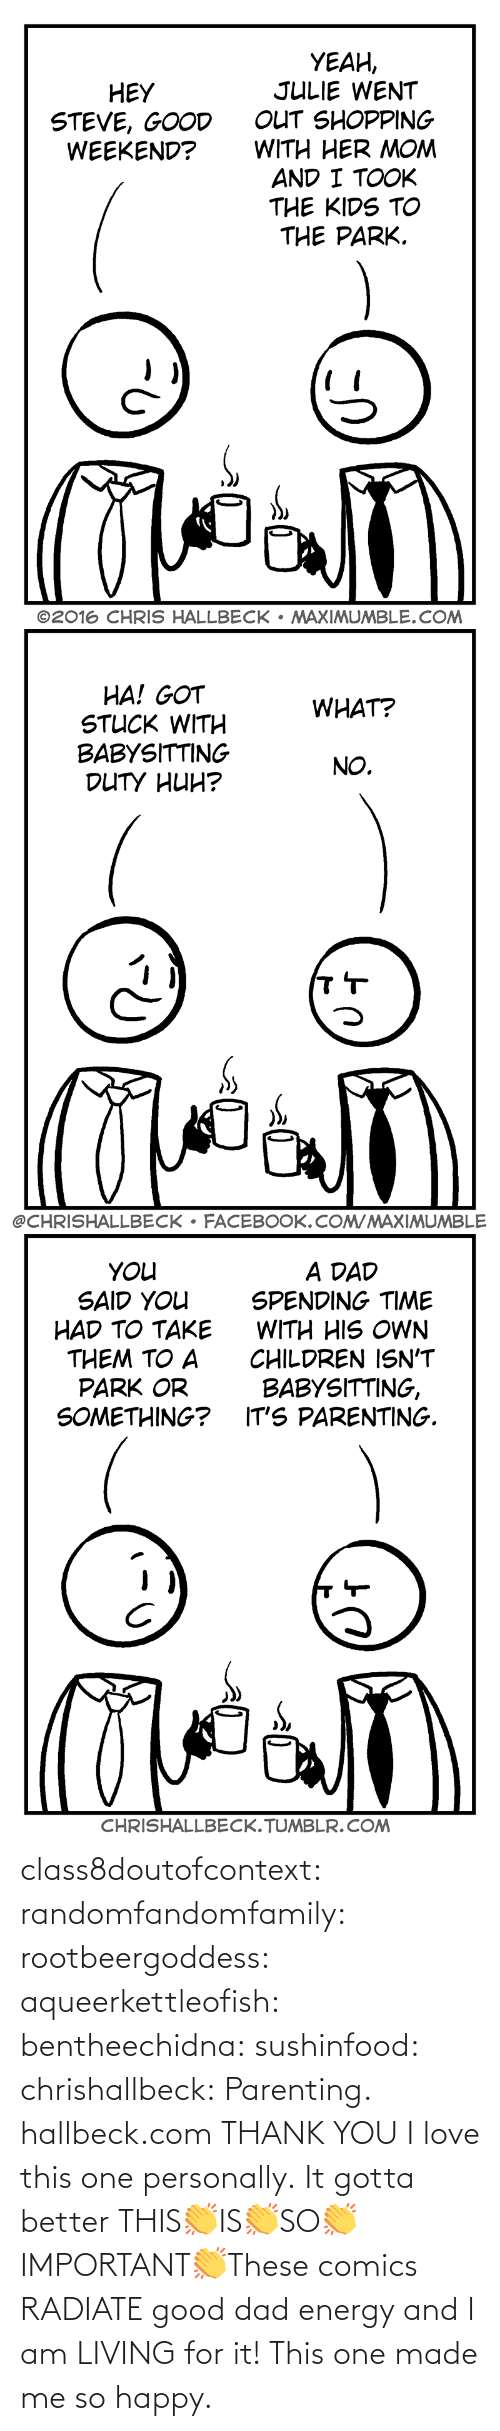 Love: class8doutofcontext: randomfandomfamily:  rootbeergoddess:  aqueerkettleofish:  bentheechidna:  sushinfood:  chrishallbeck:  Parenting. hallbeck.com  THANK YOU  I love this one personally.    It gotta better   THIS👏IS👏SO👏IMPORTANT👏These comics RADIATE good dad energy and I am LIVING for it!    This one made me so happy.